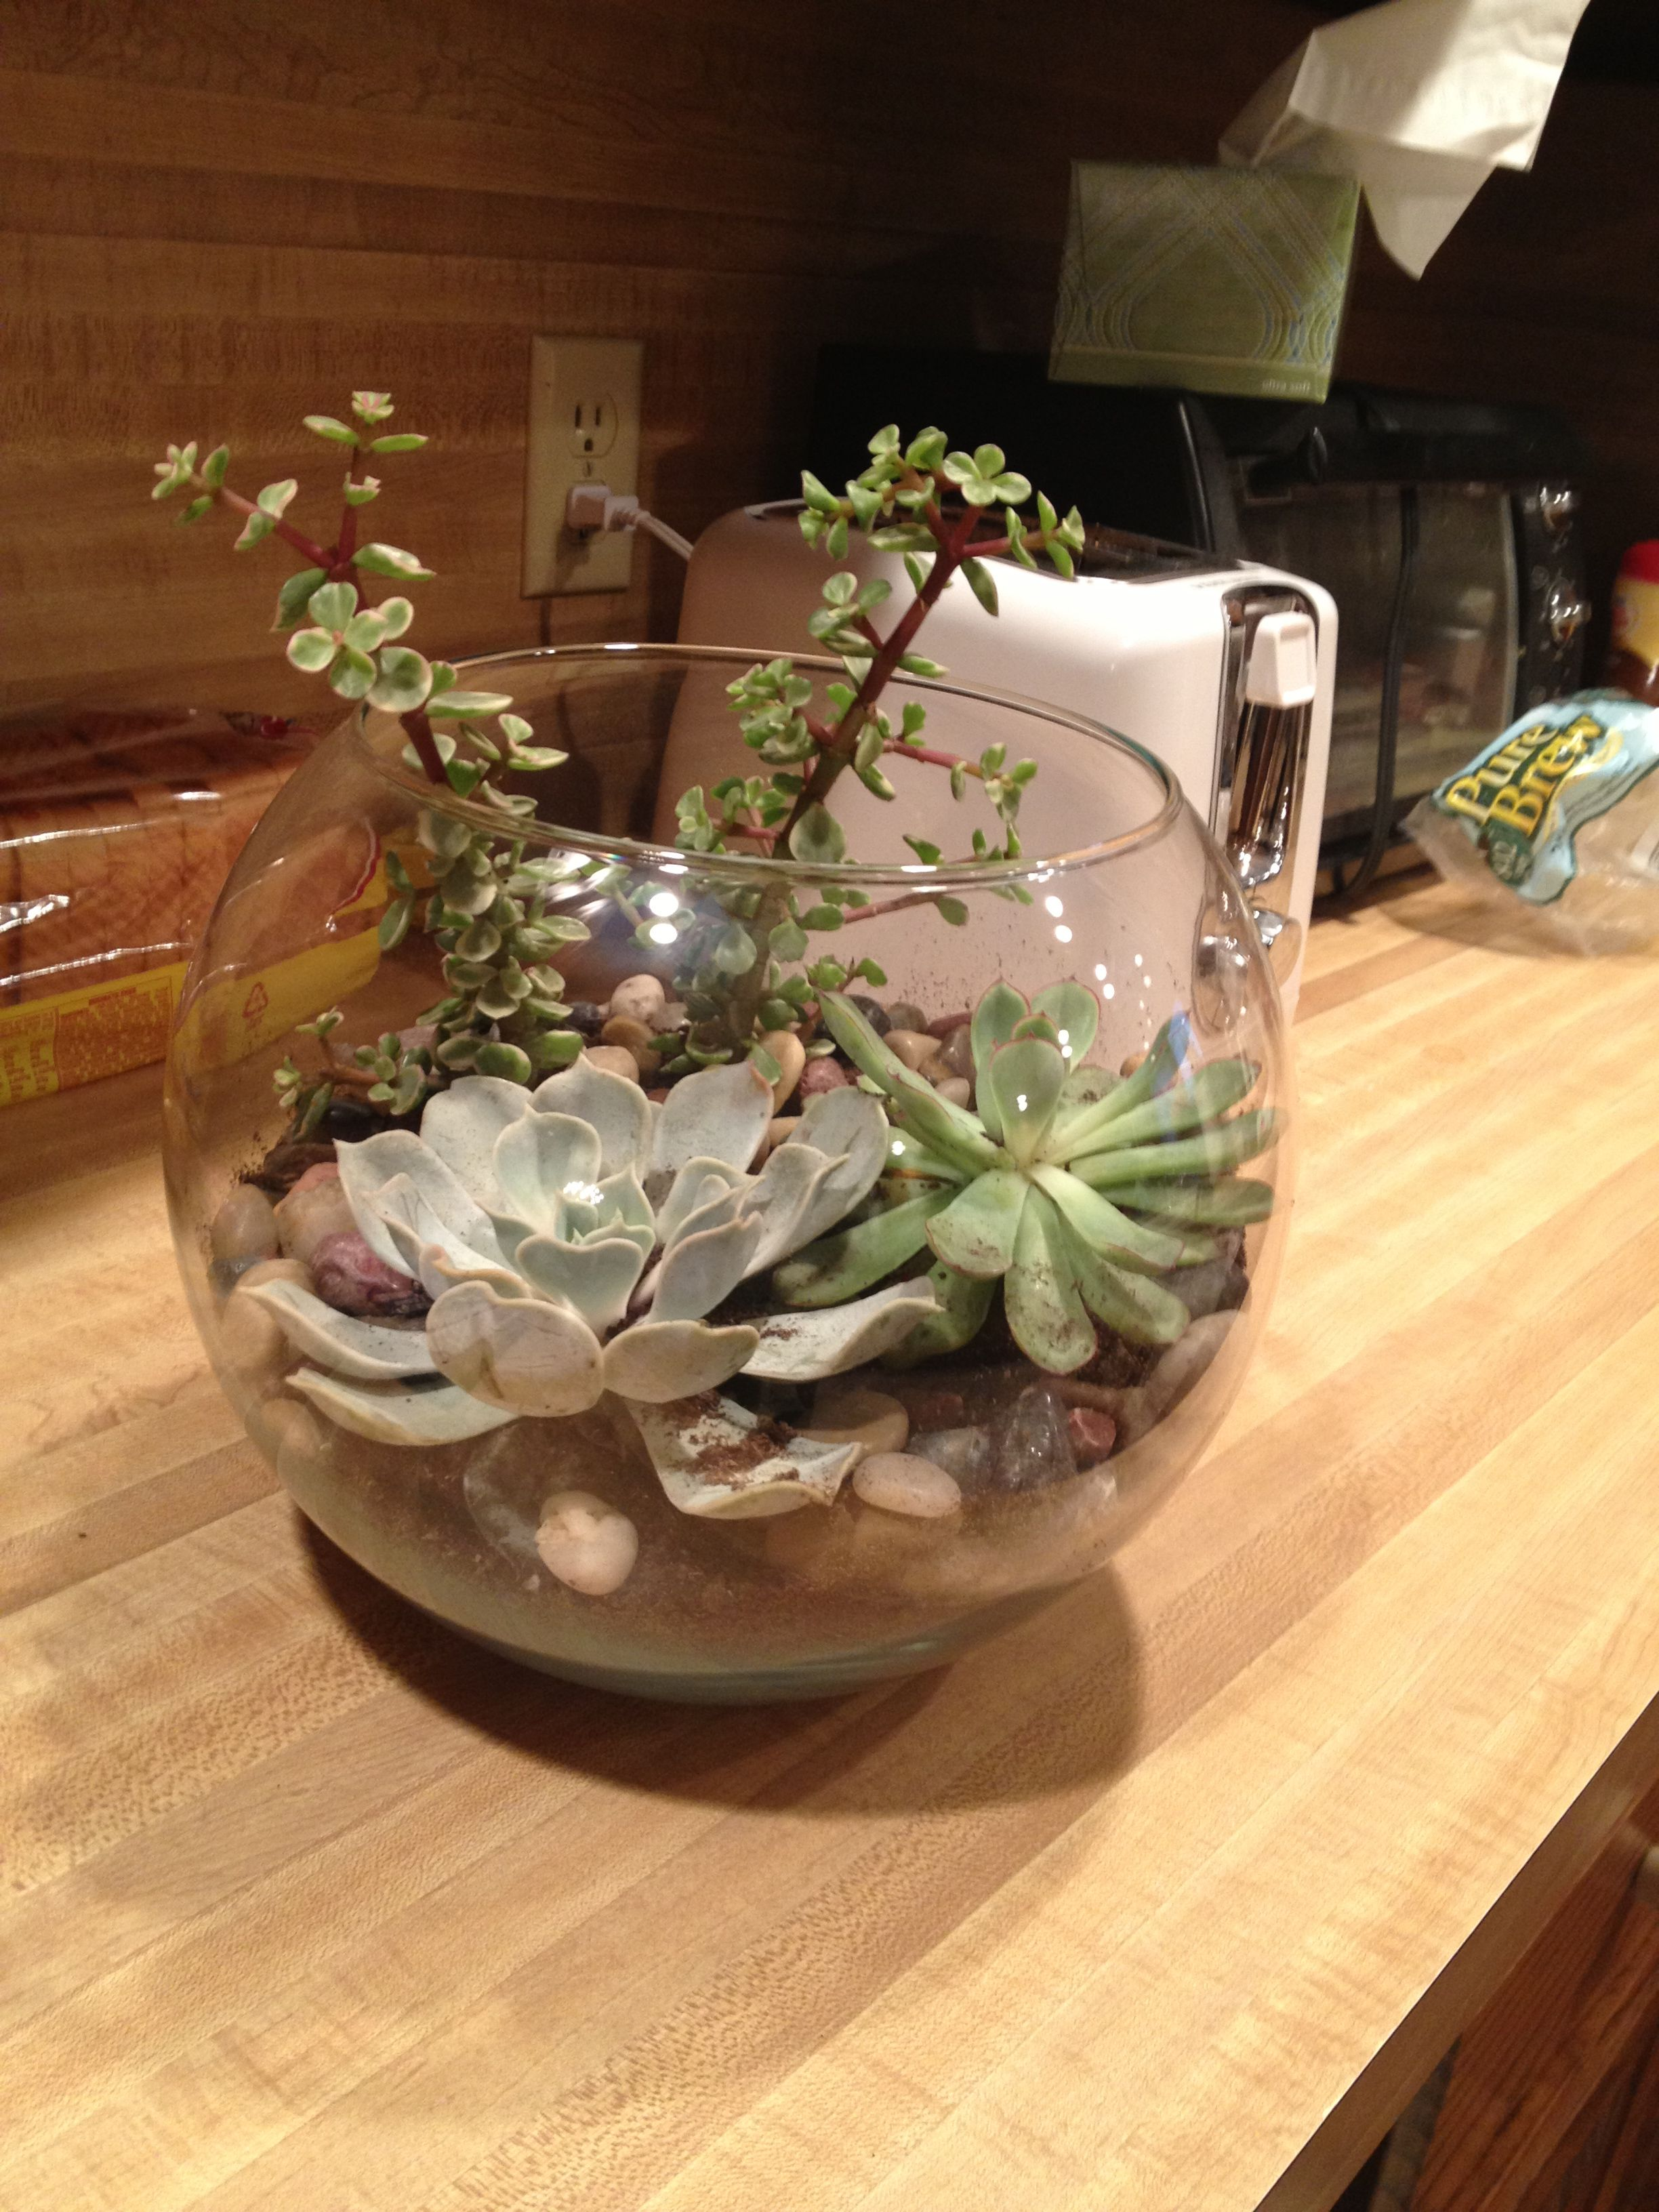 I made a terrarium! the plants were about $3.50 at lowes, got a bag ...